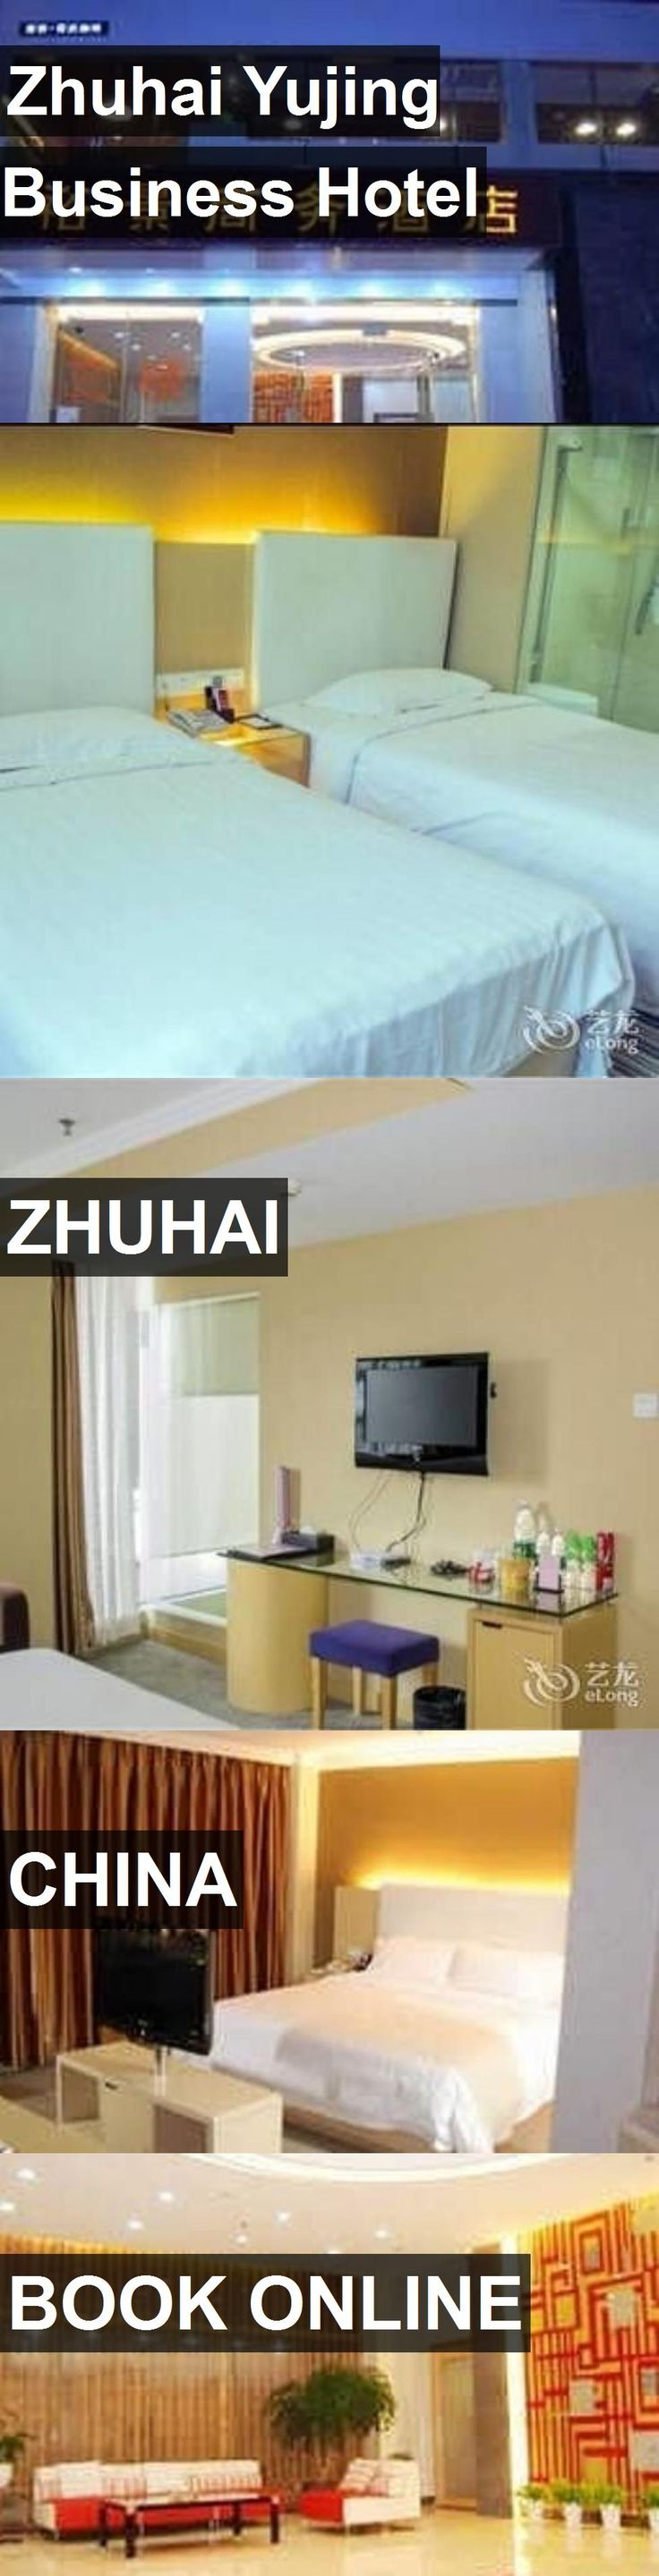 Hotel Zhuhai Yujing Business Hotel in Zhuhai, China. For more information, photos, reviews and best prices please follow the link. #China #Zhuhai #ZhuhaiYujingBusinessHotel #hotel #travel #vacation